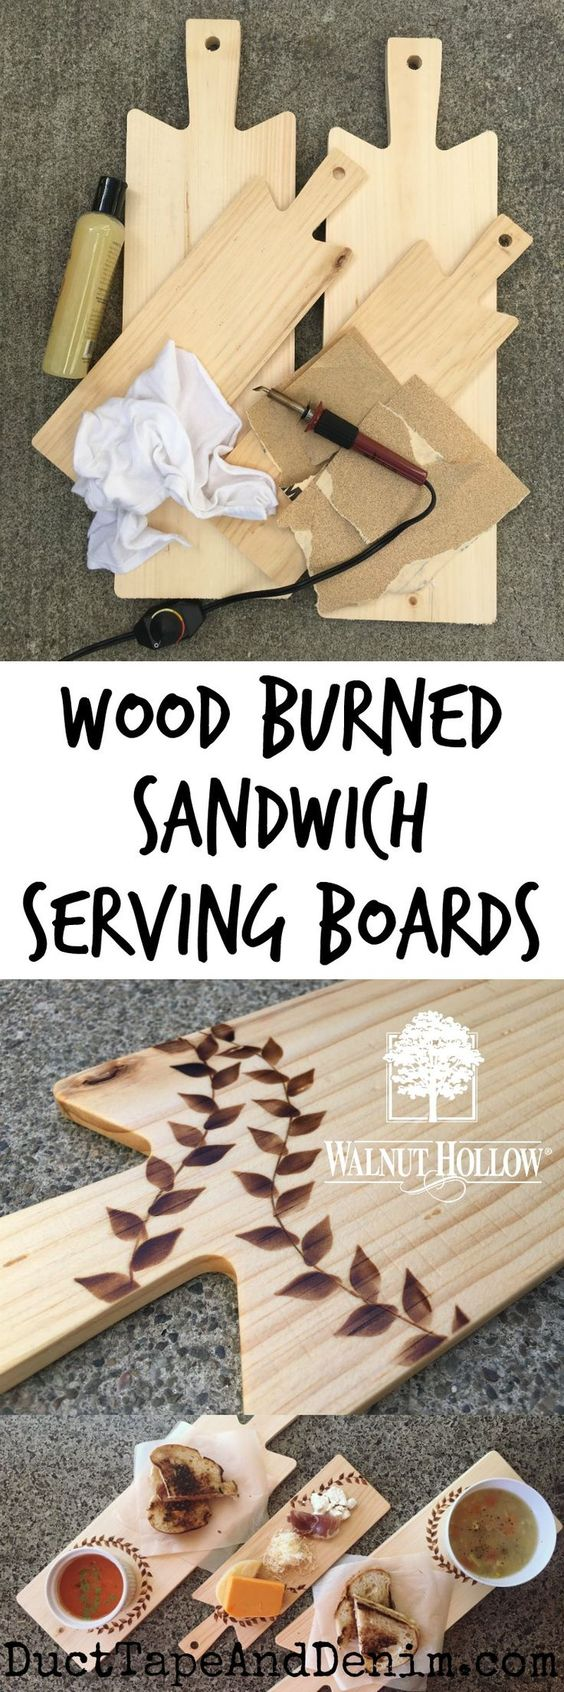 4 DIY Wood Burning Art Project Ideas and amp; Tutorials